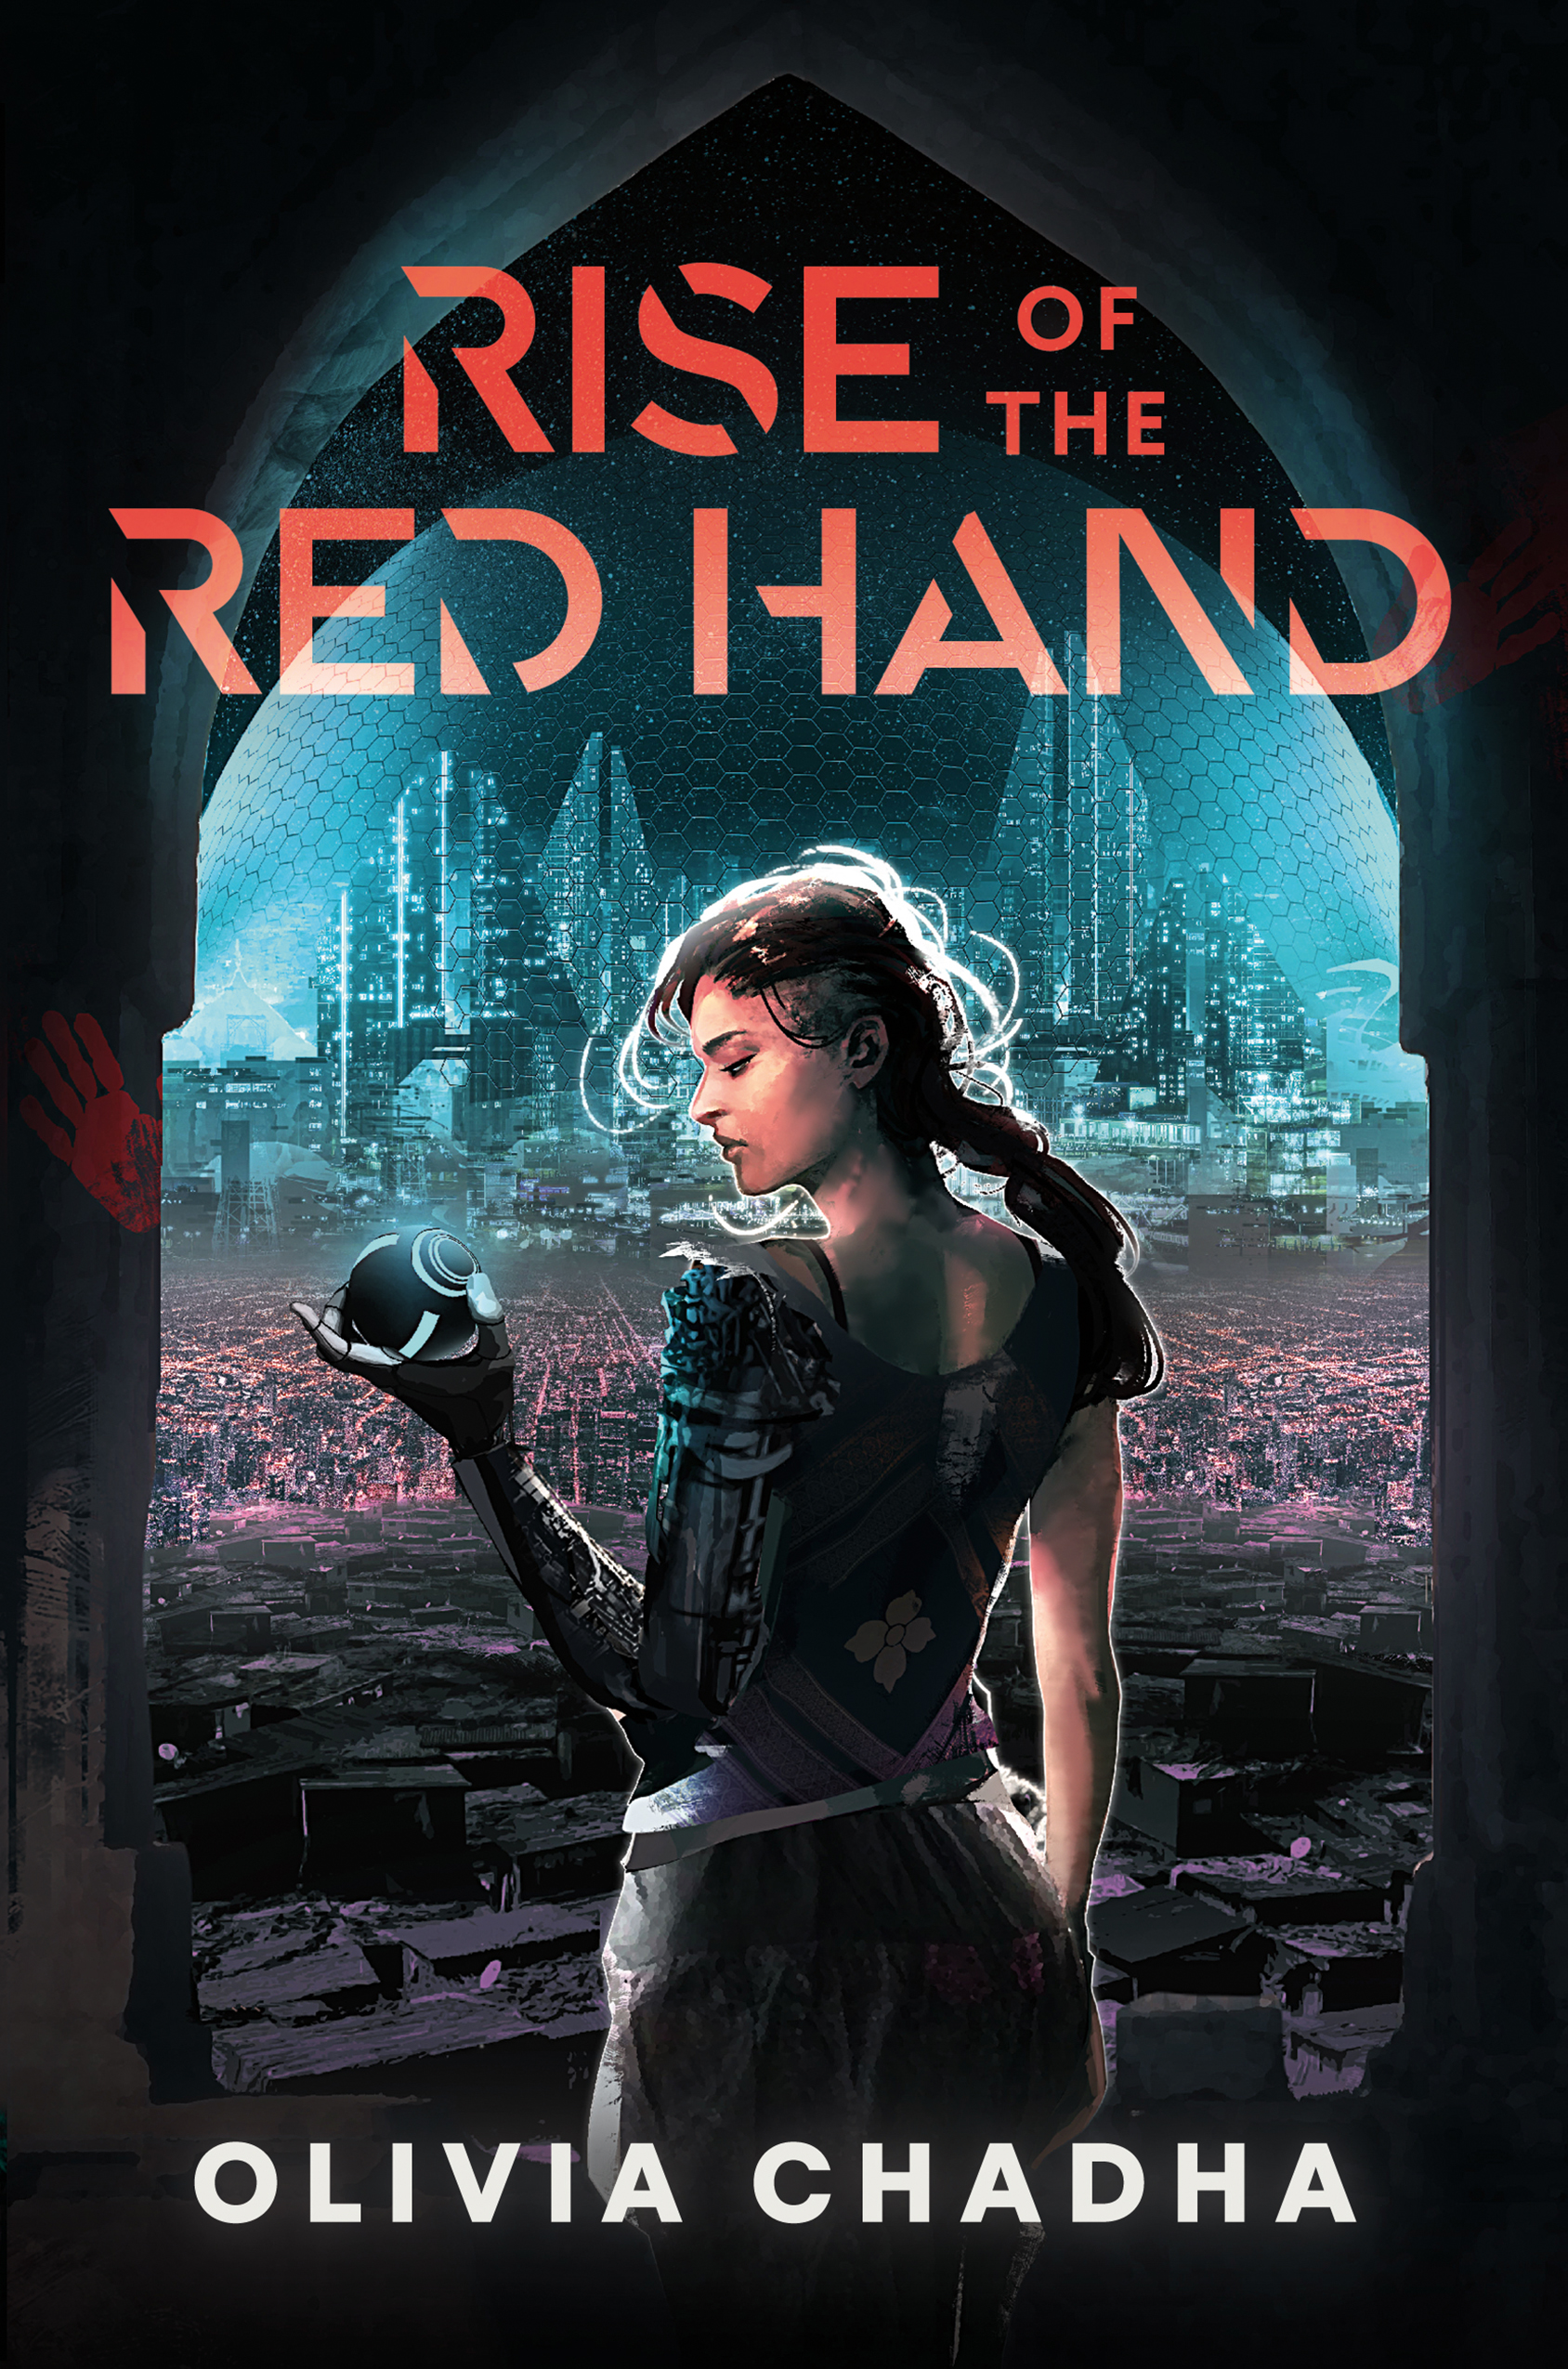 2021 book releases: Rise of the Red Hand by Olivia Chadha